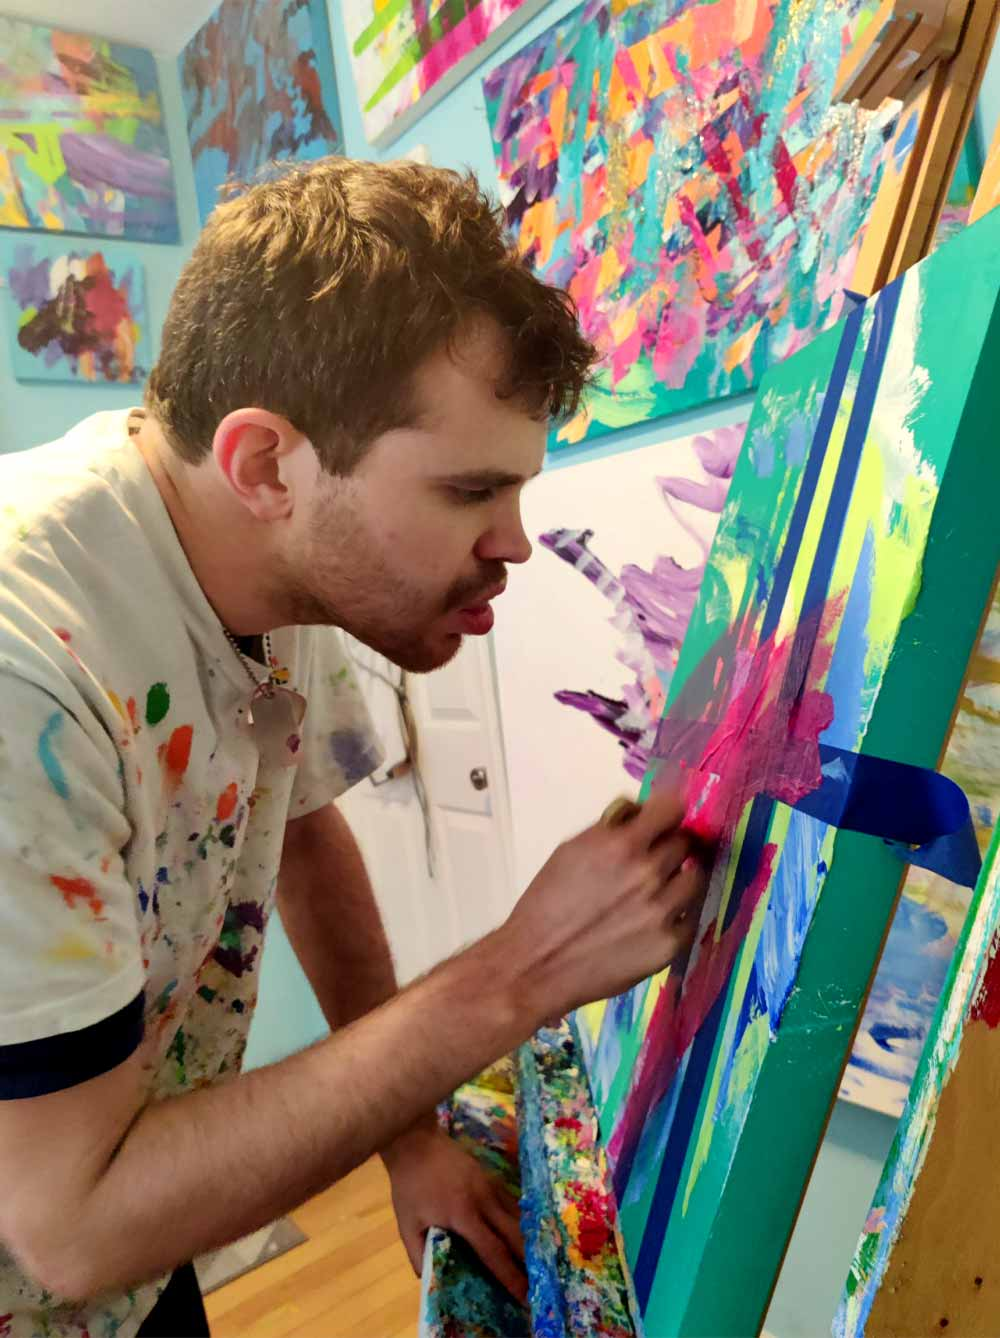 A young white man wearing a white t-shirt with paint stains and dog tag-style necklace looks closely at an abstract, colorful painting as he works on the piece.